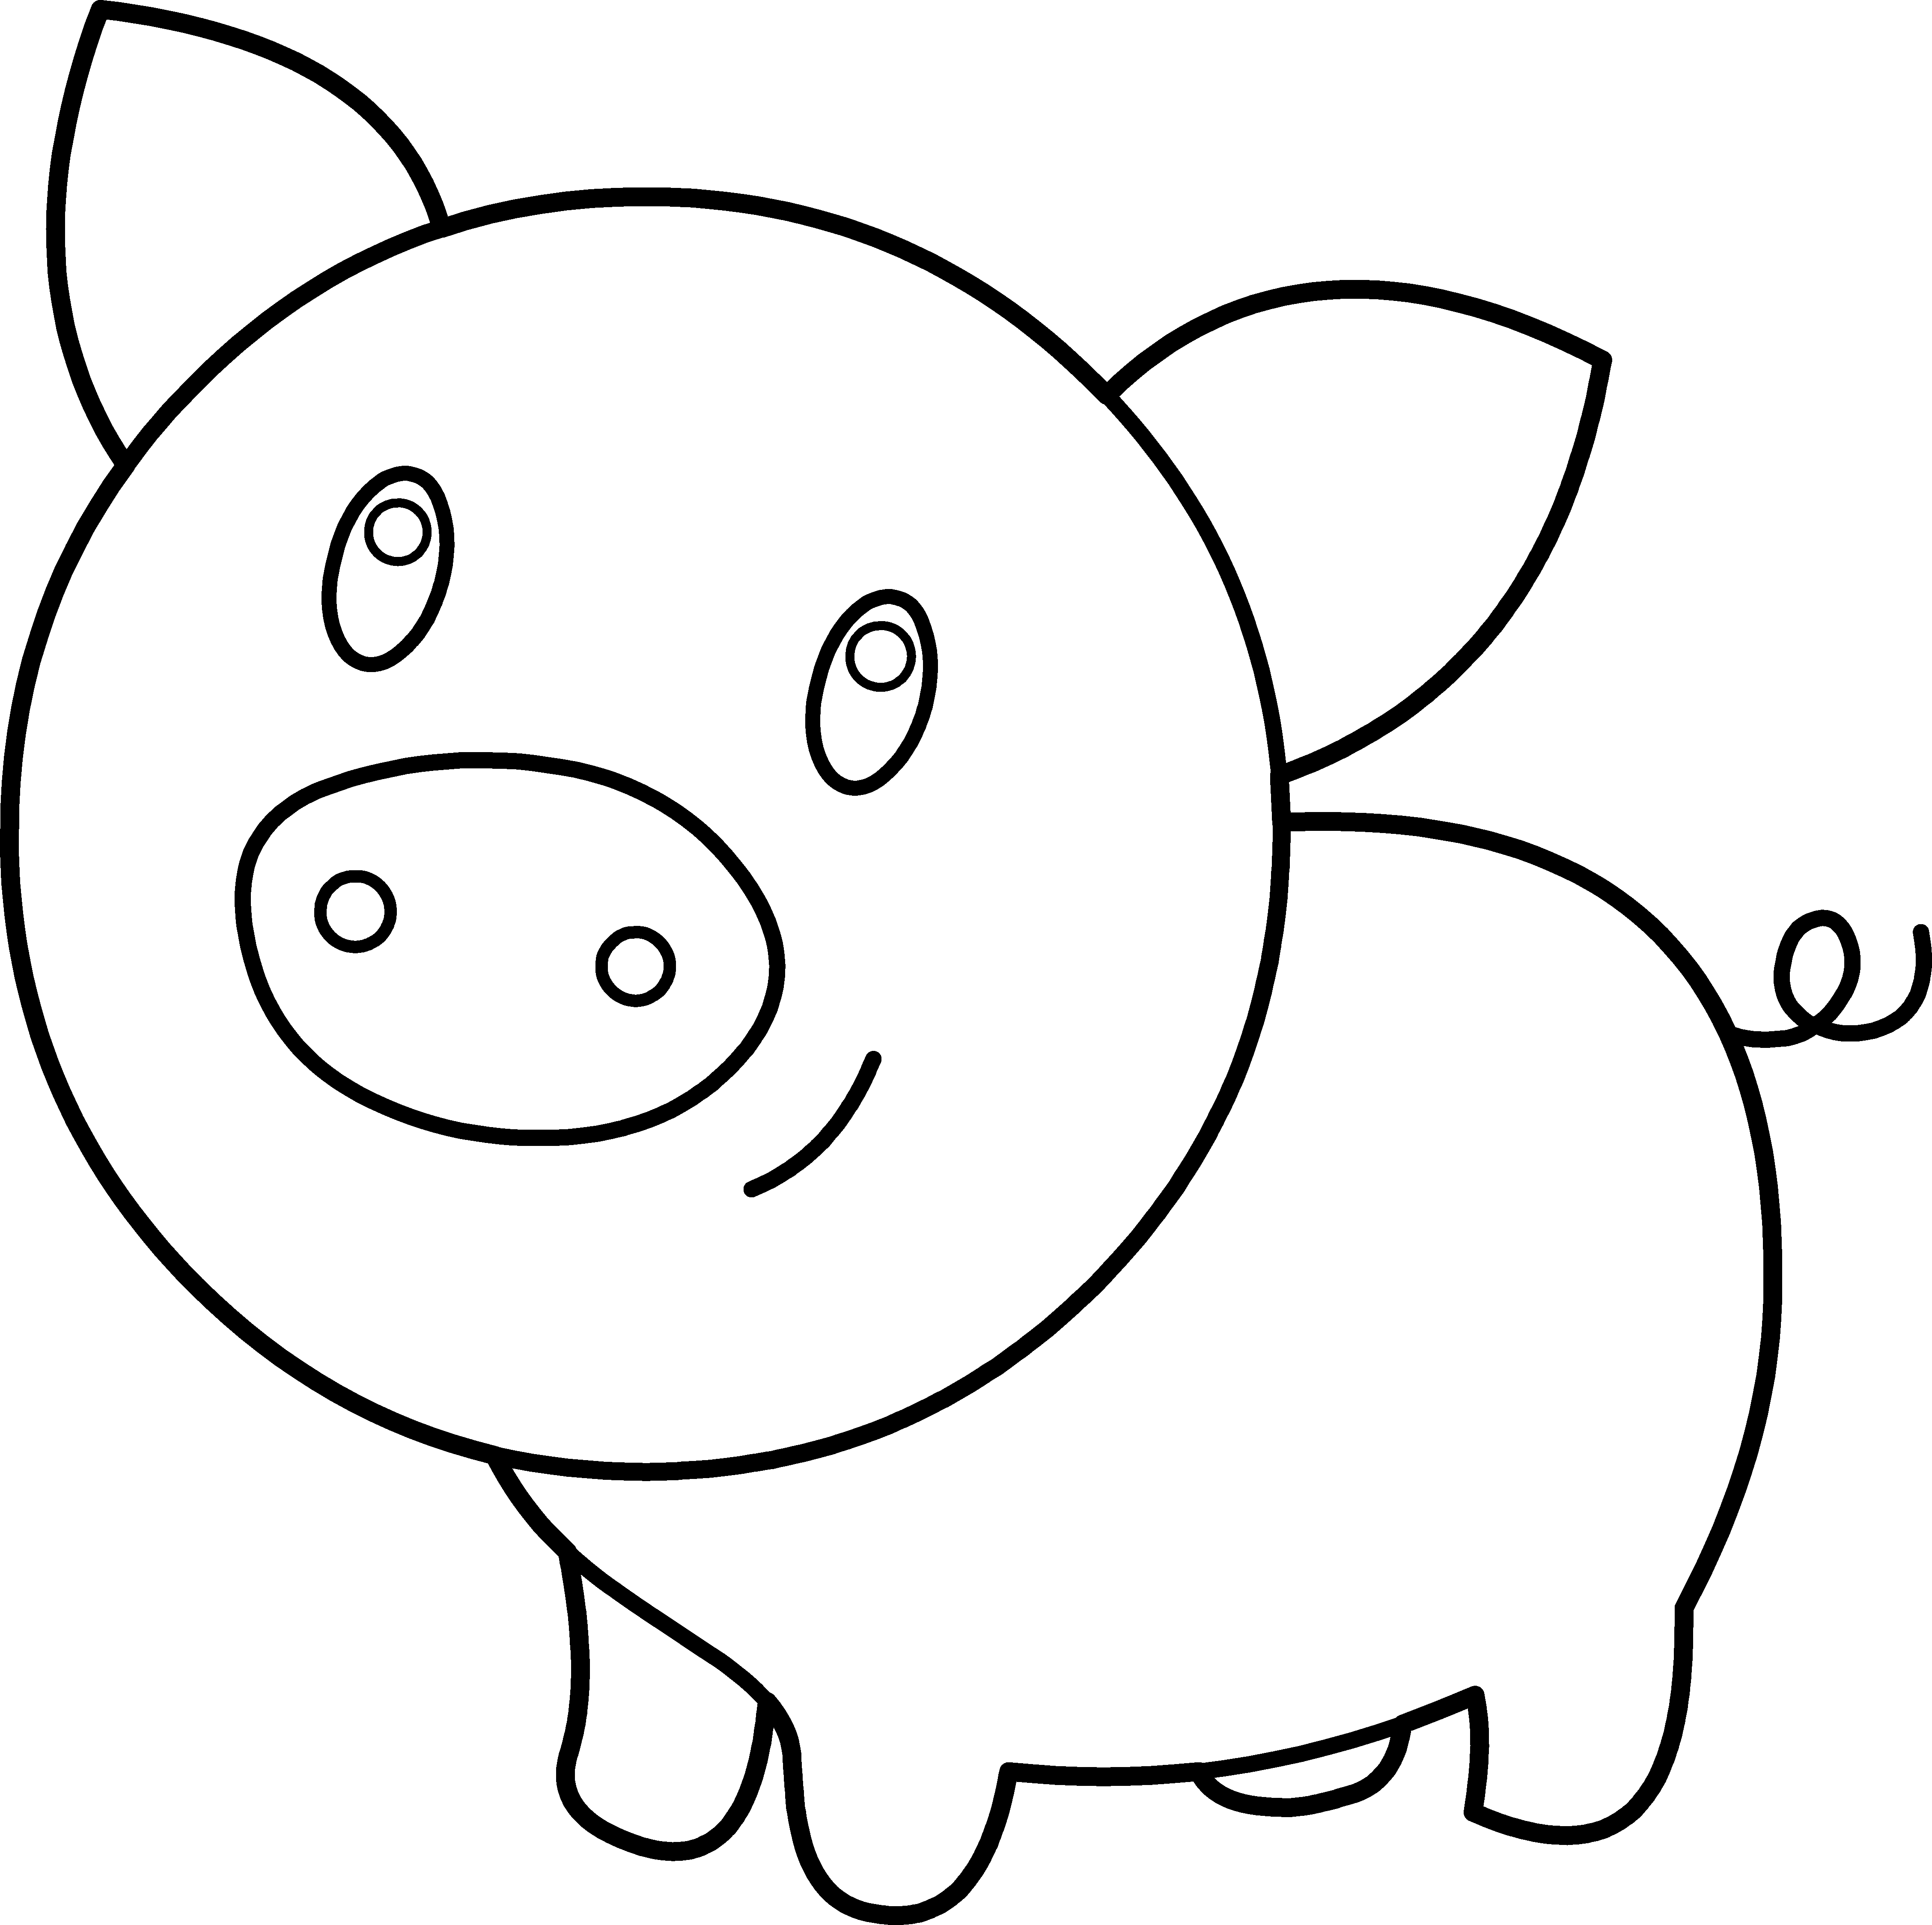 Cute pig coloring page - a-k-b.info